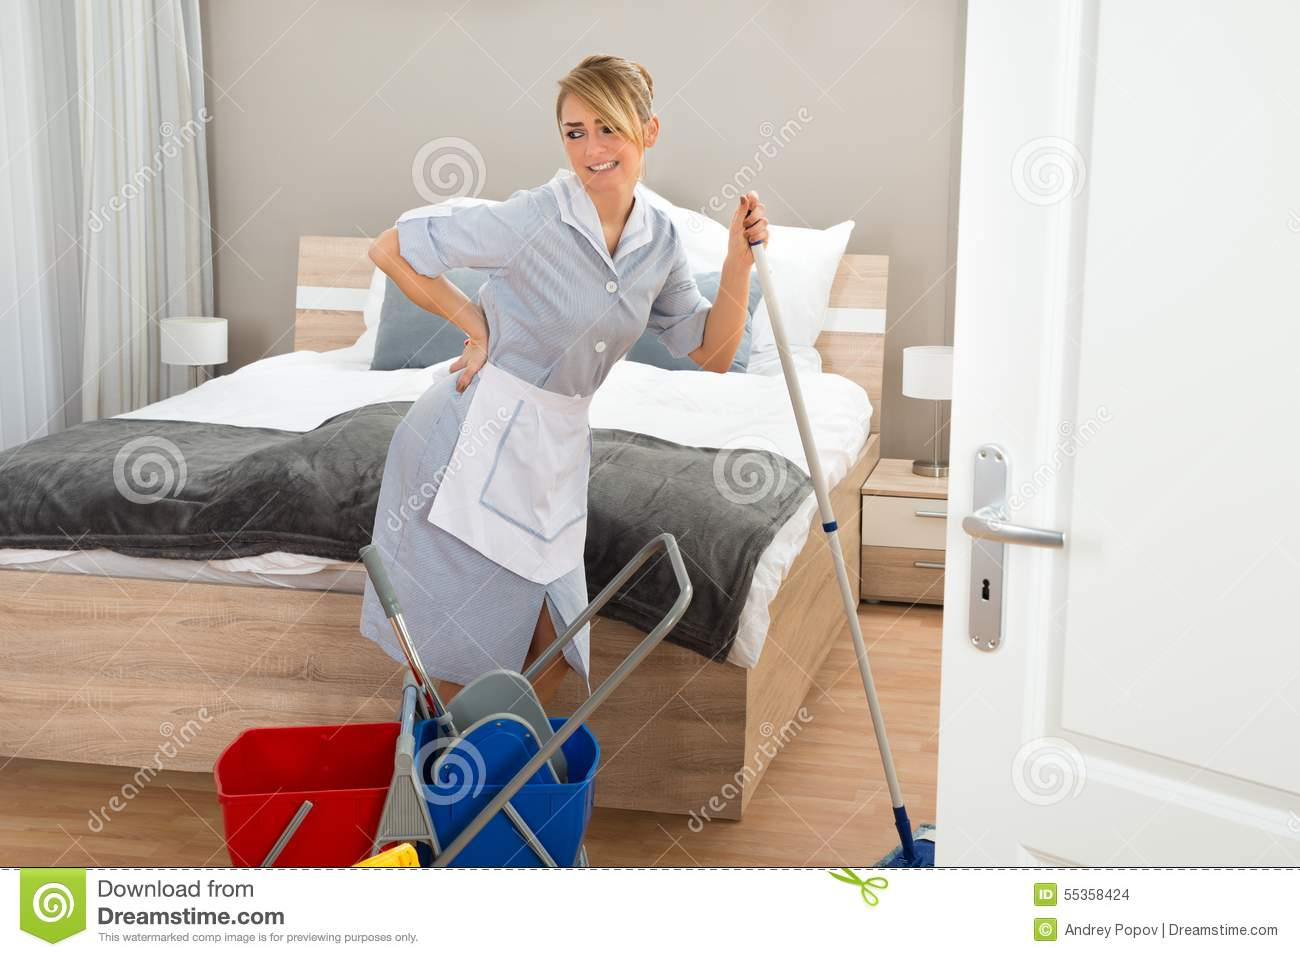 Maid Suffering From Backache While Cleaning Hotel Room